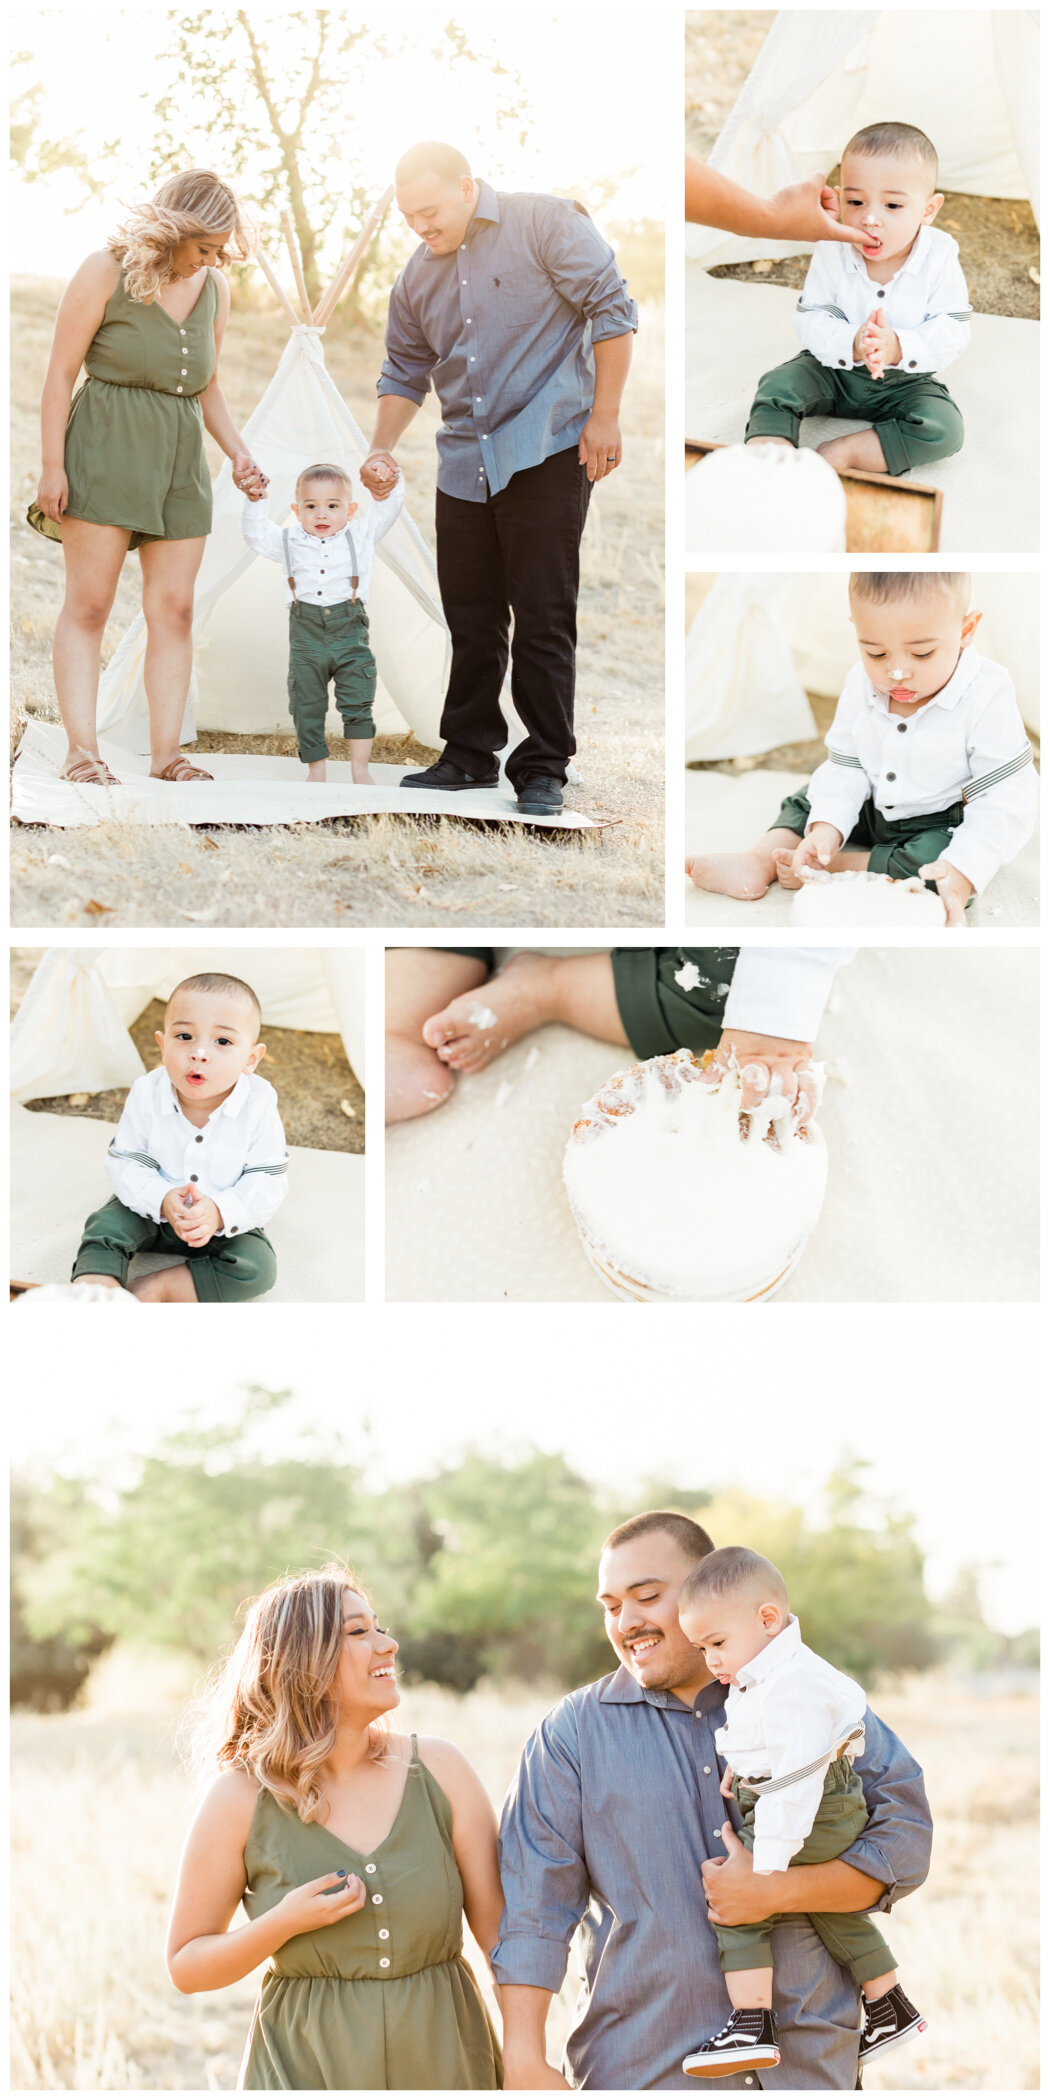 Collage of photos from one year old boy cake smash photo session.